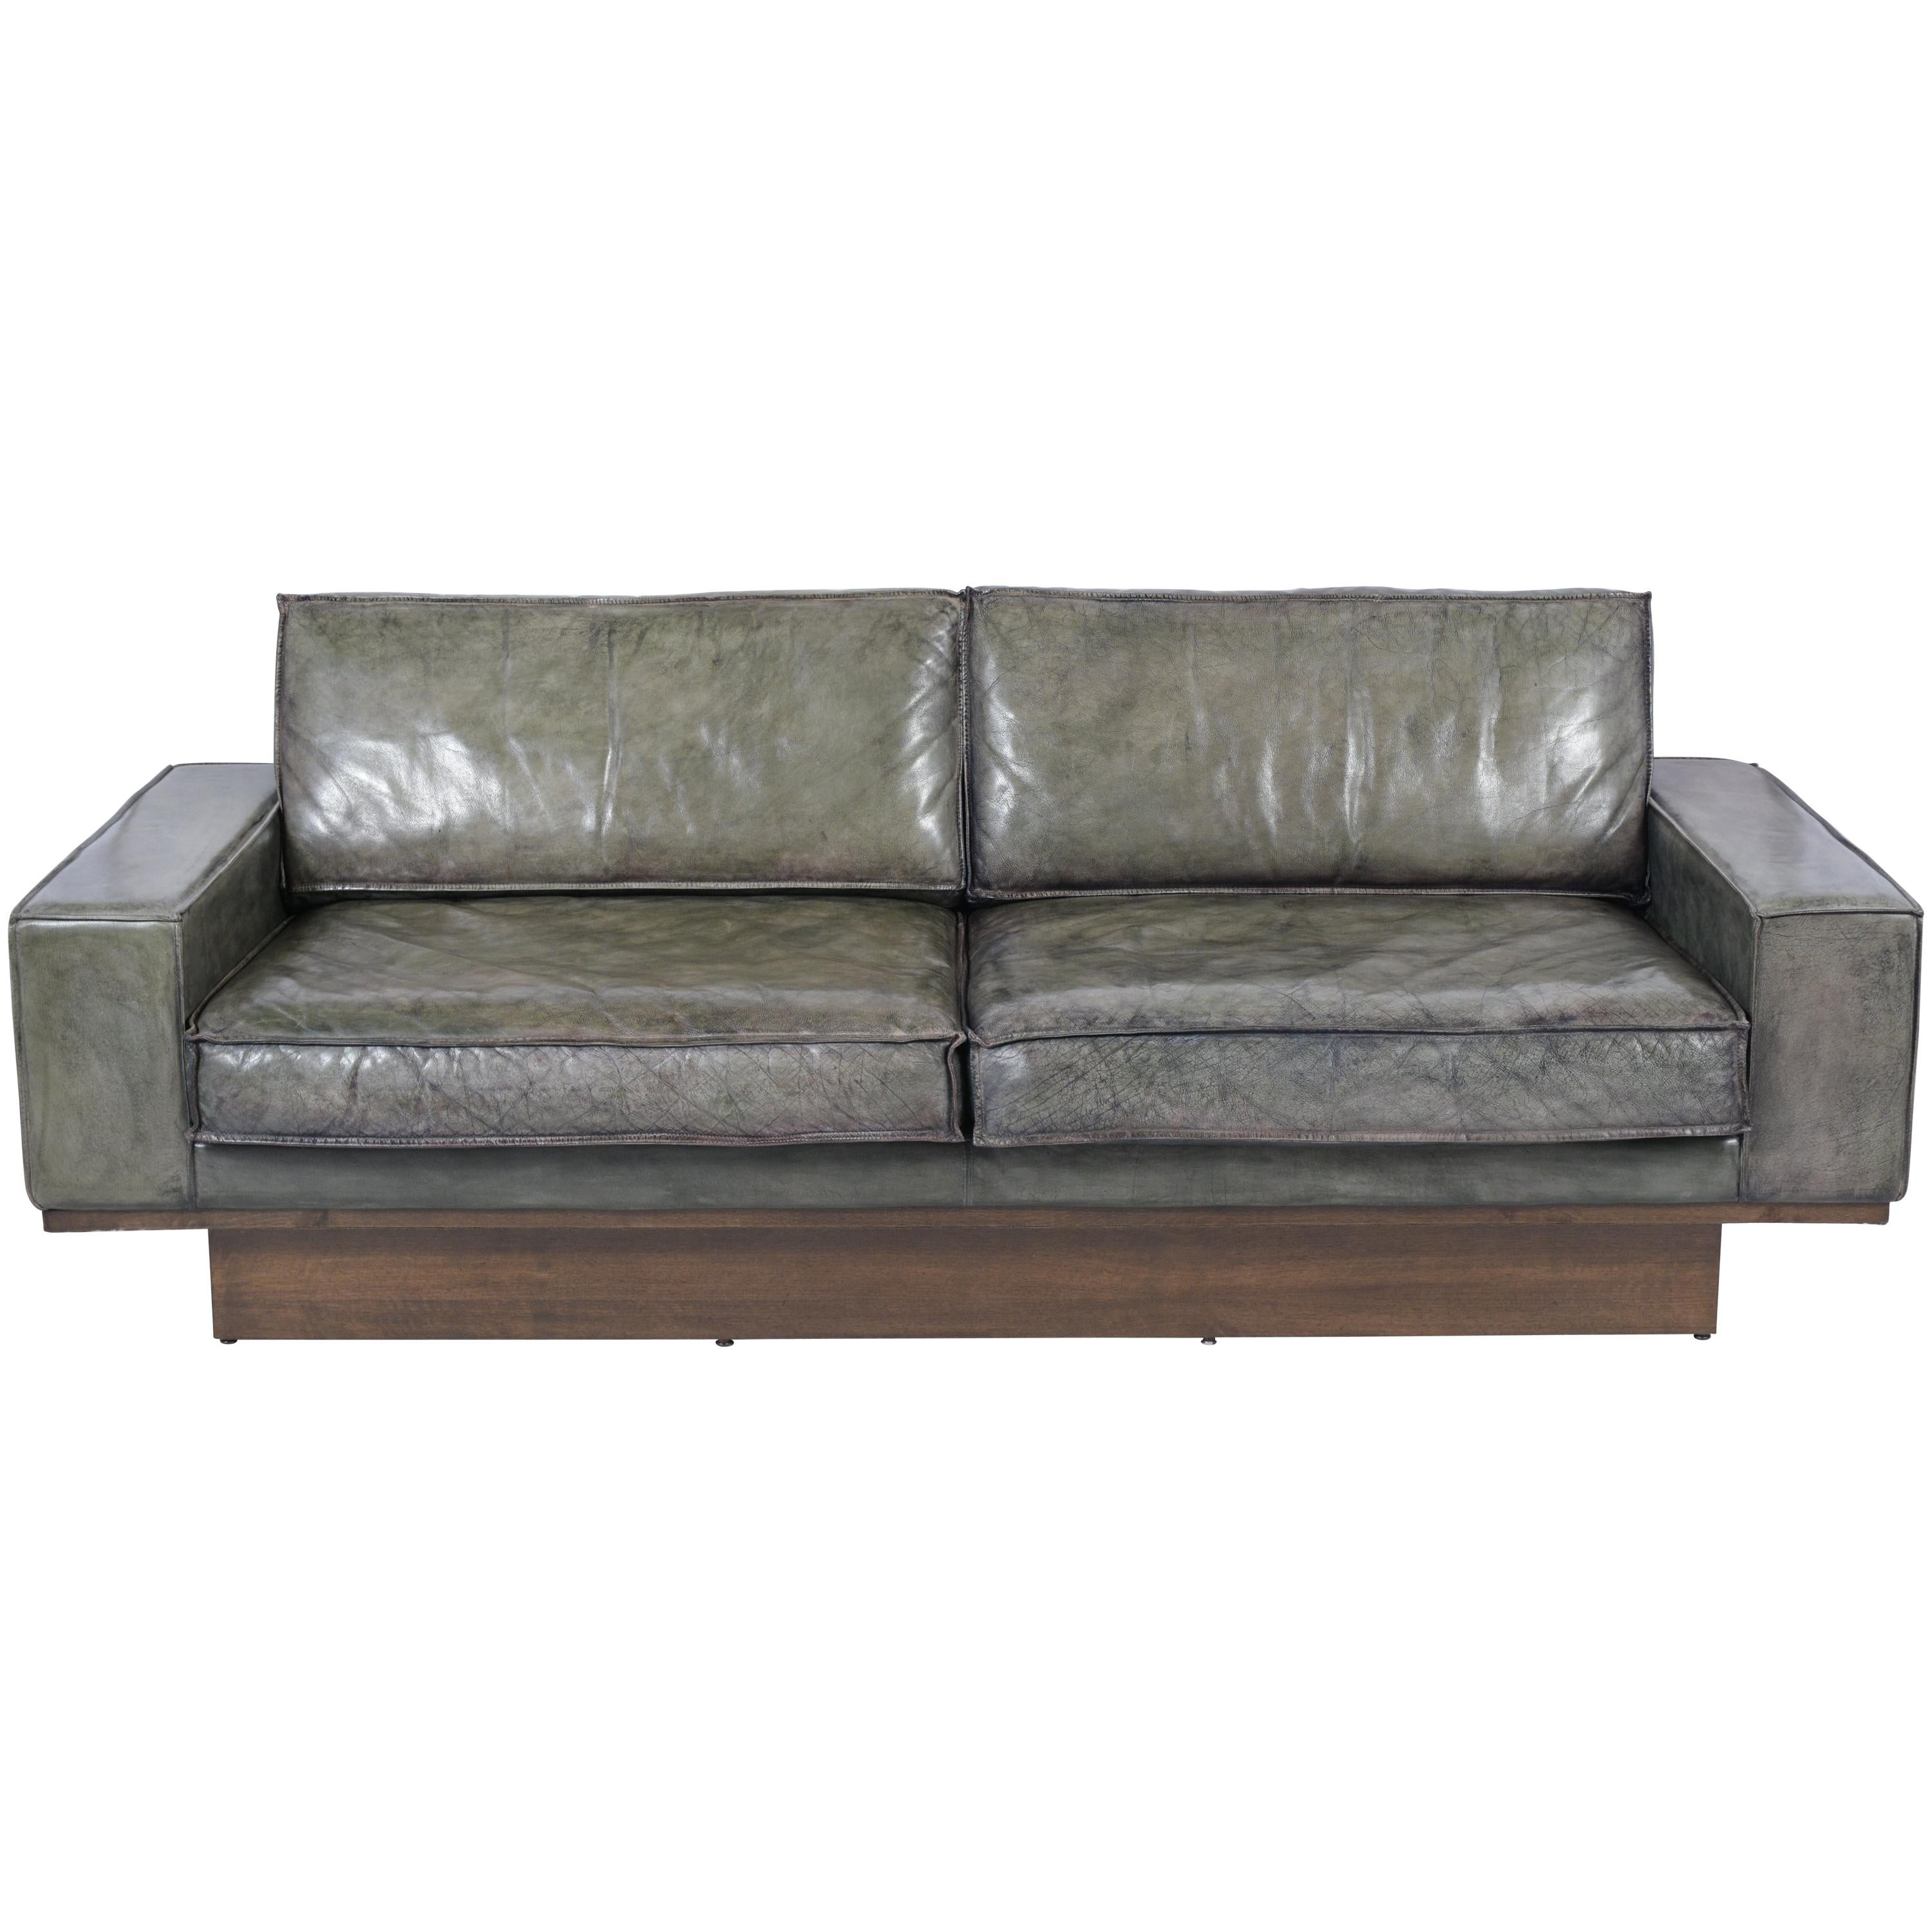 Midcentury Modern Two Seat Leather Sofa